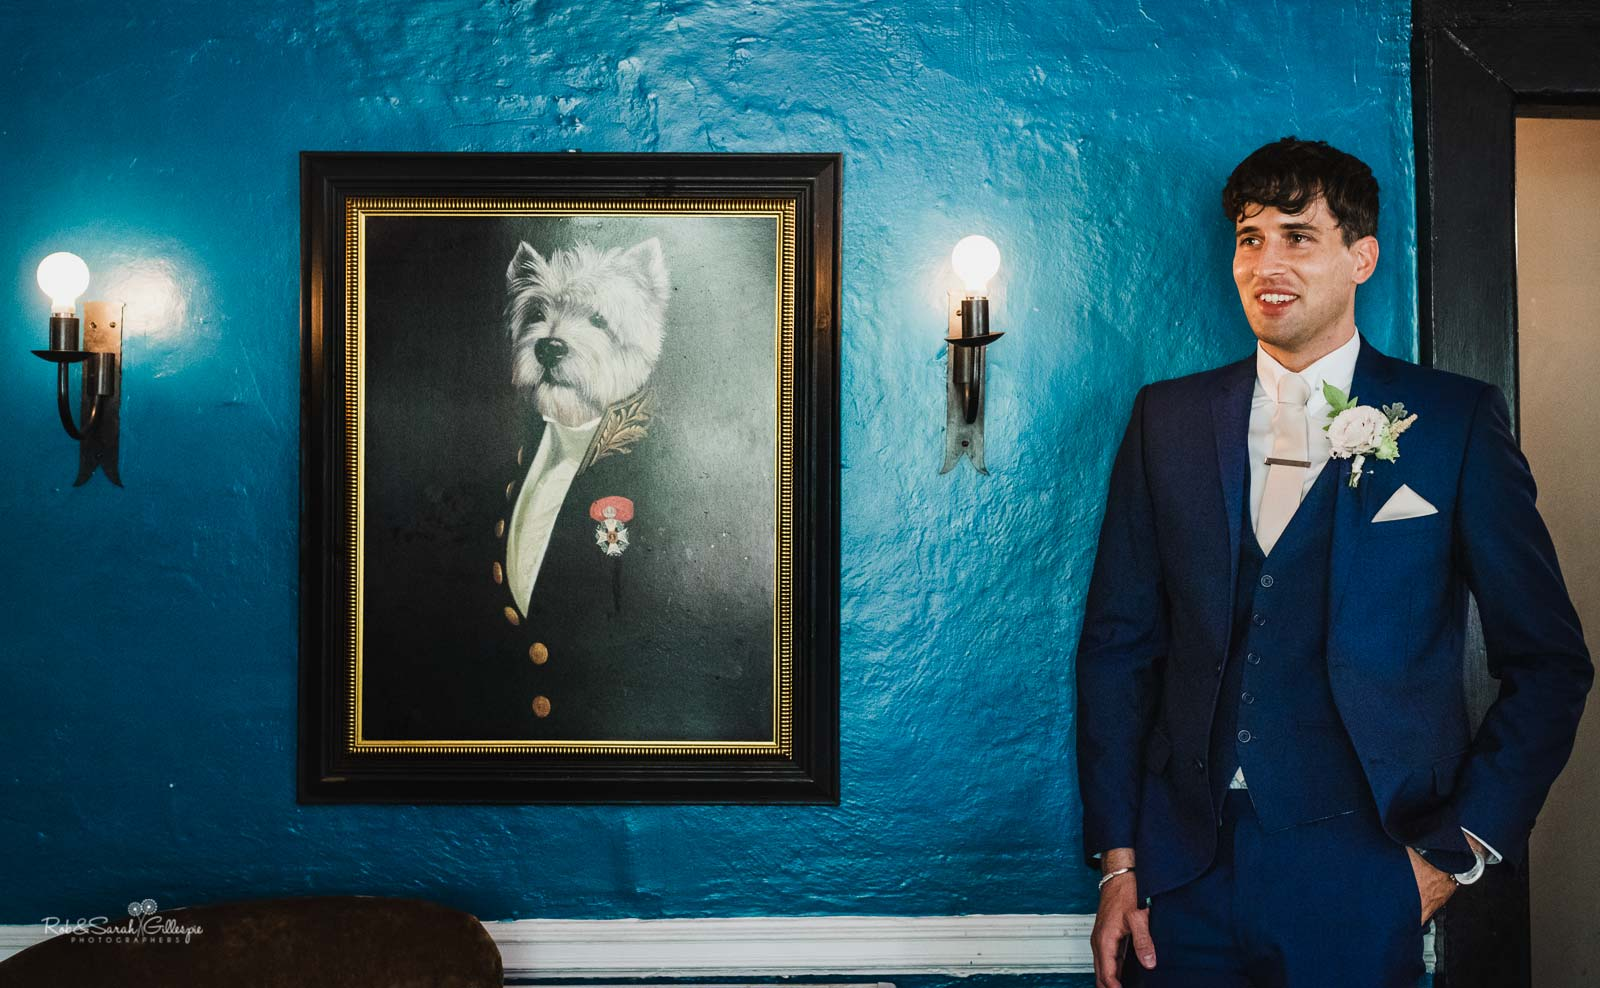 Groom poses for photo next to painting of dog